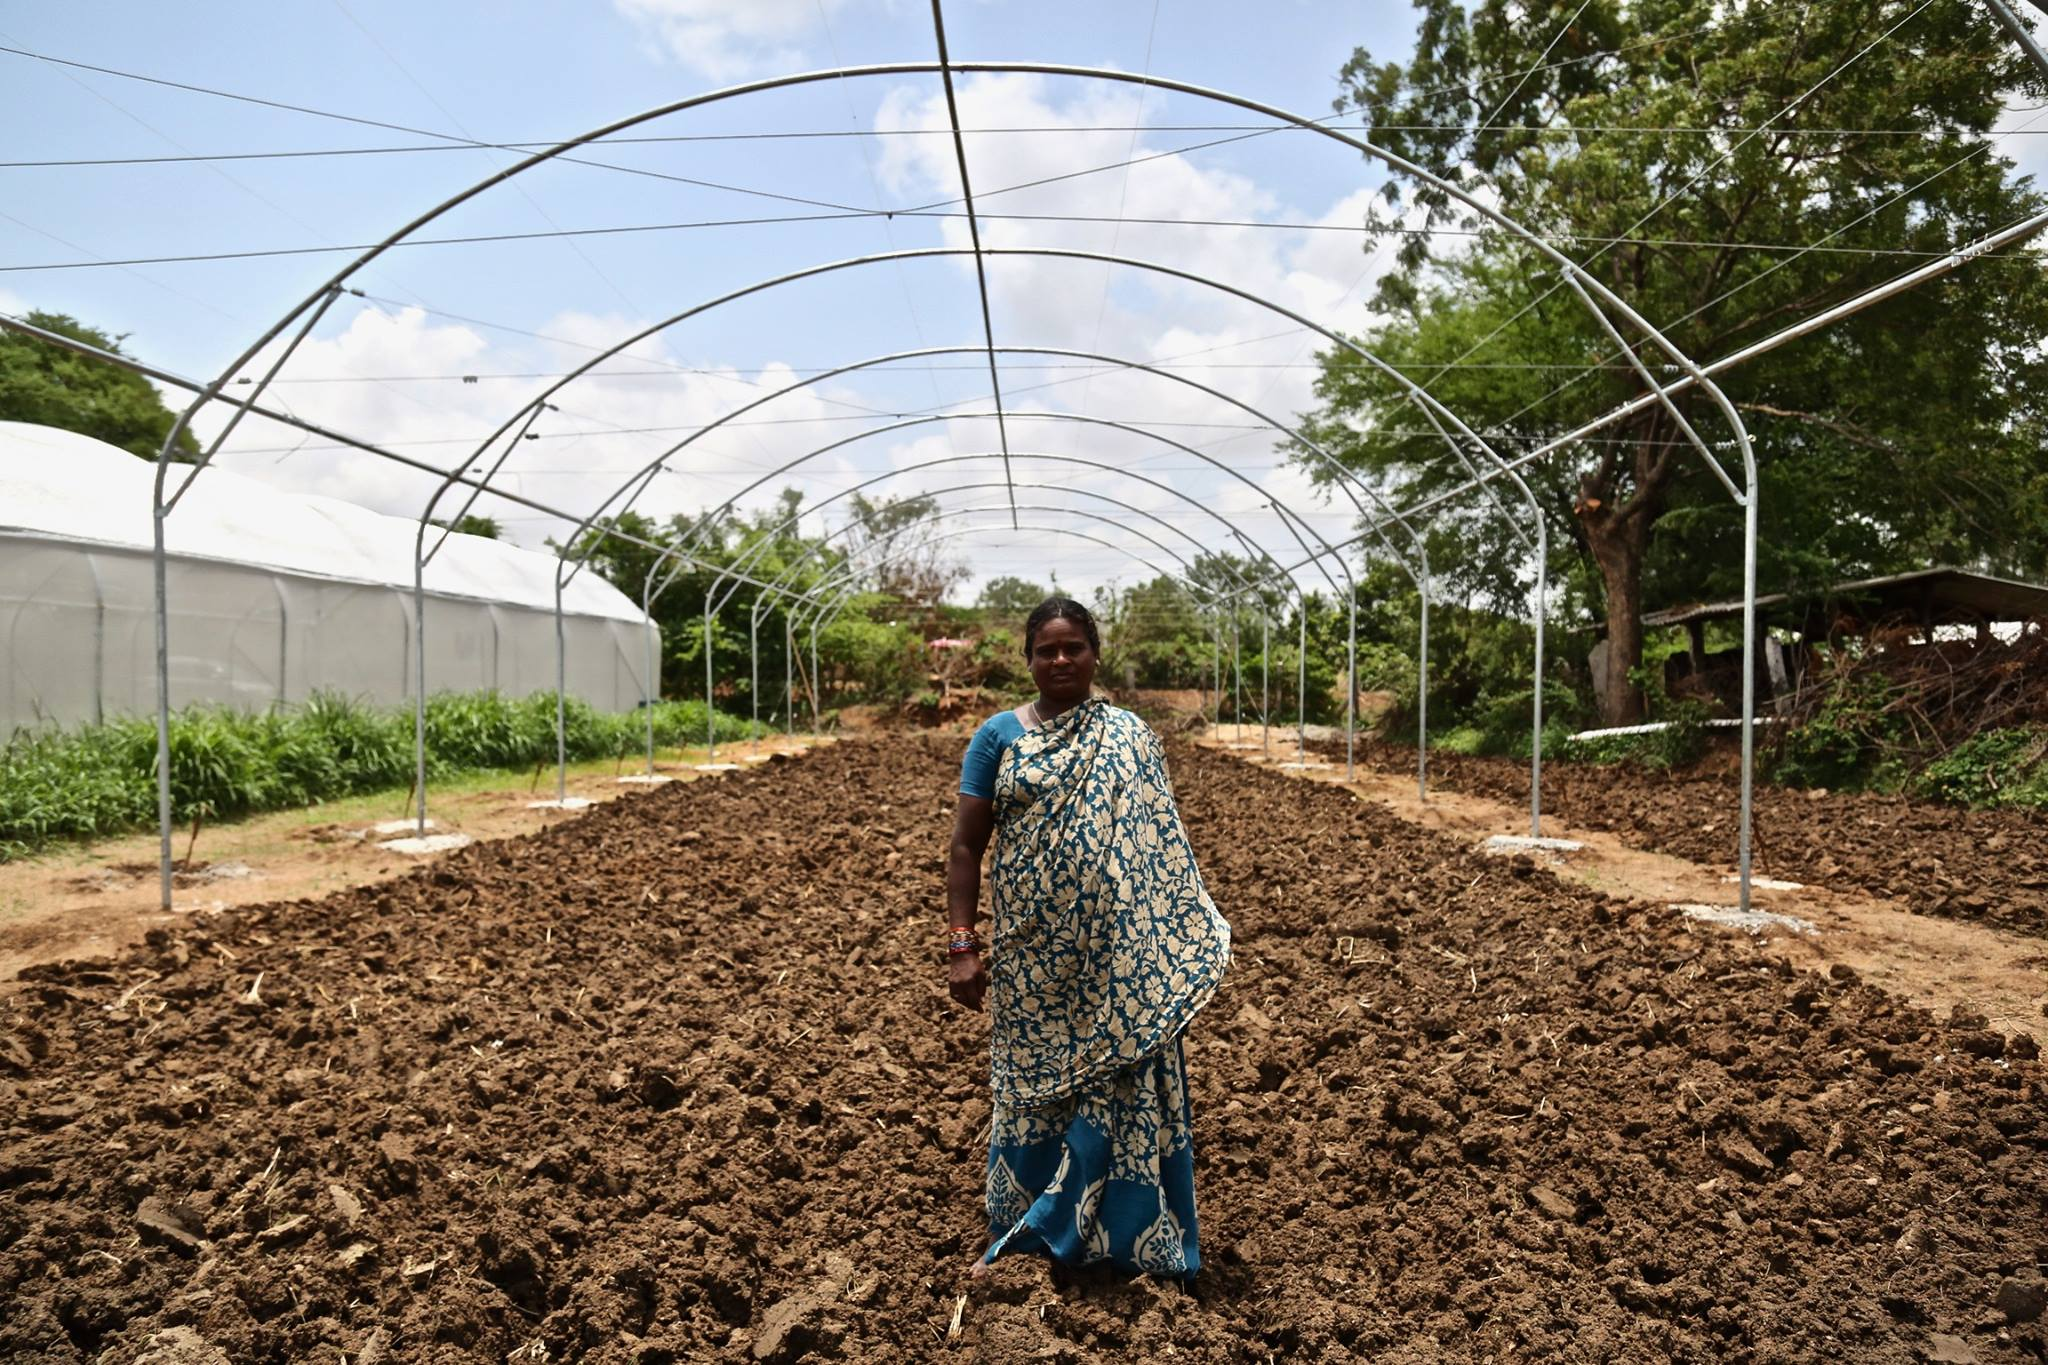 New farmer Saraswati Appala signed up for a Kheyti greenhouse after seeing how successful her brother-in-law's harvest was in the neighboring greenhouse.